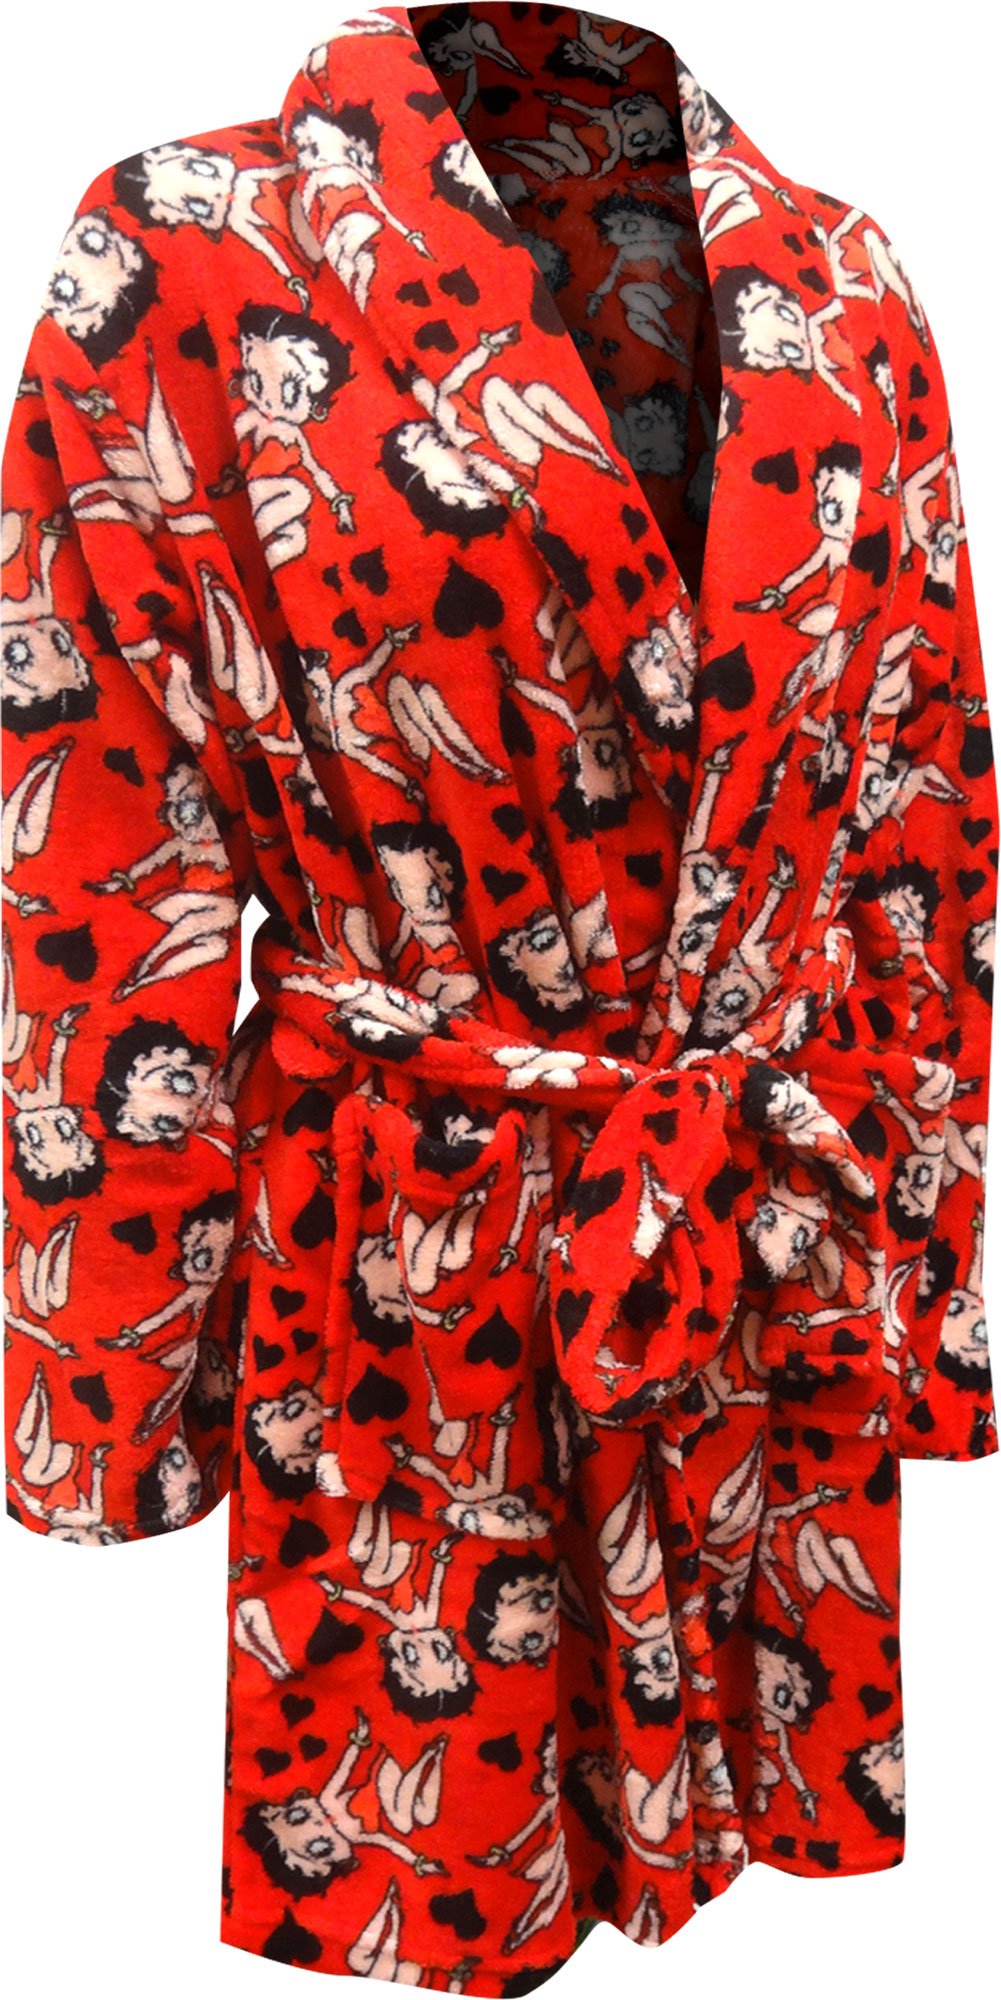 Image of Betty Boop Red Plus Size Super Soft Plush Robe for women